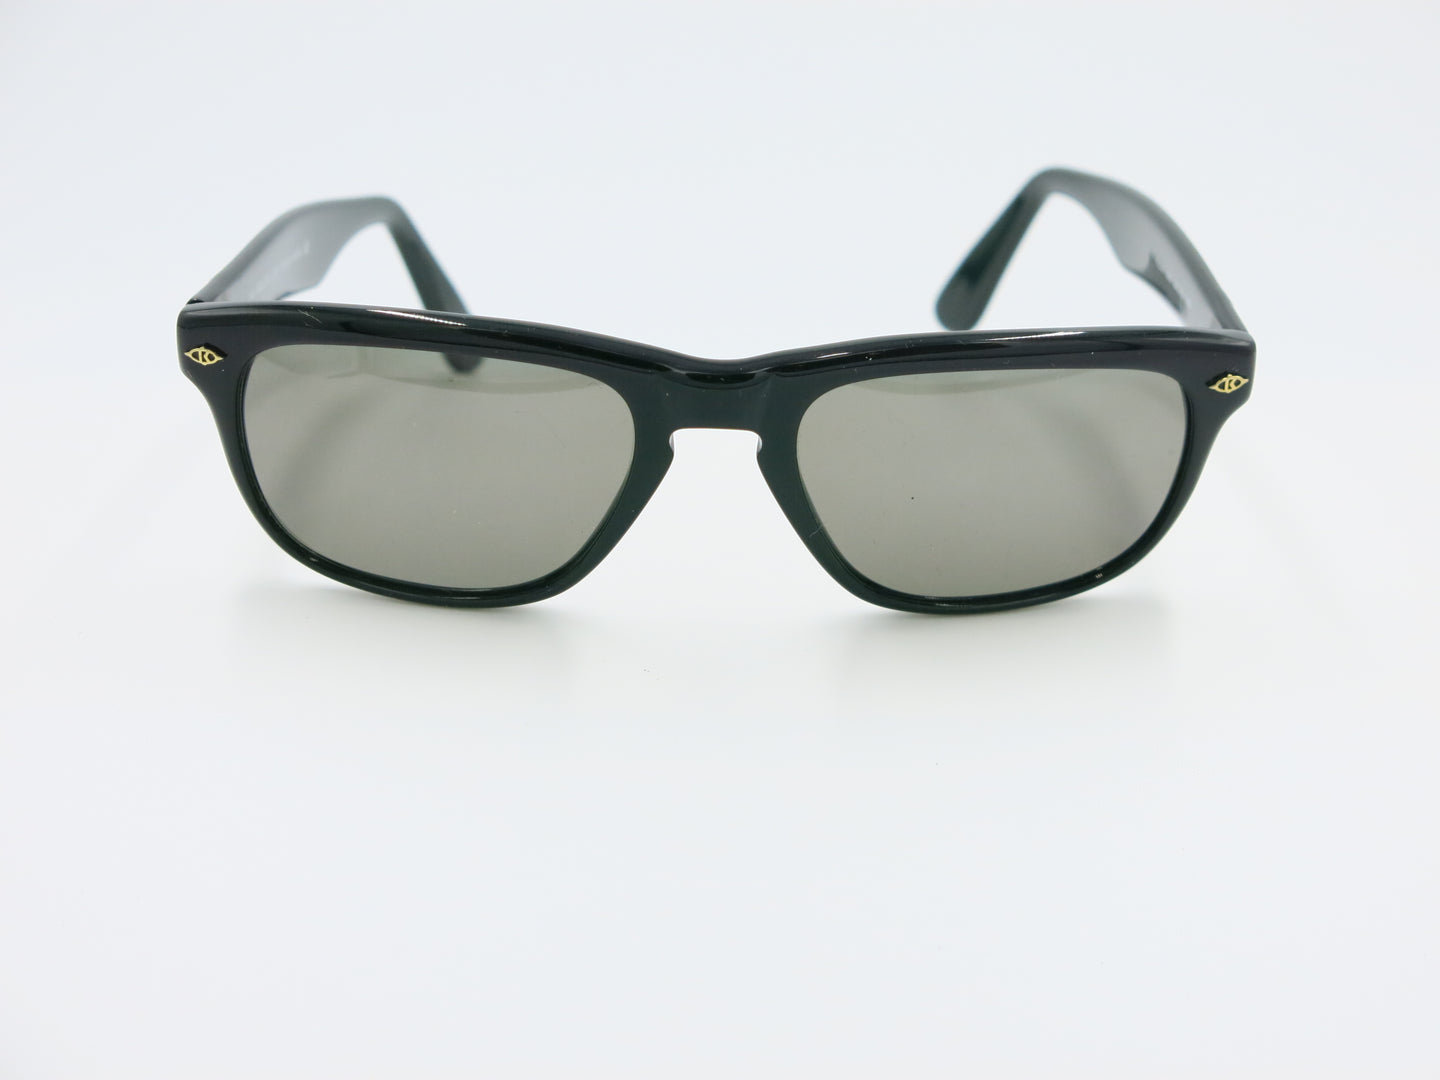 Killer Loop Sunglasses - KL 21-500 | Sunglasses by Killer Loop | Friedman & Sons